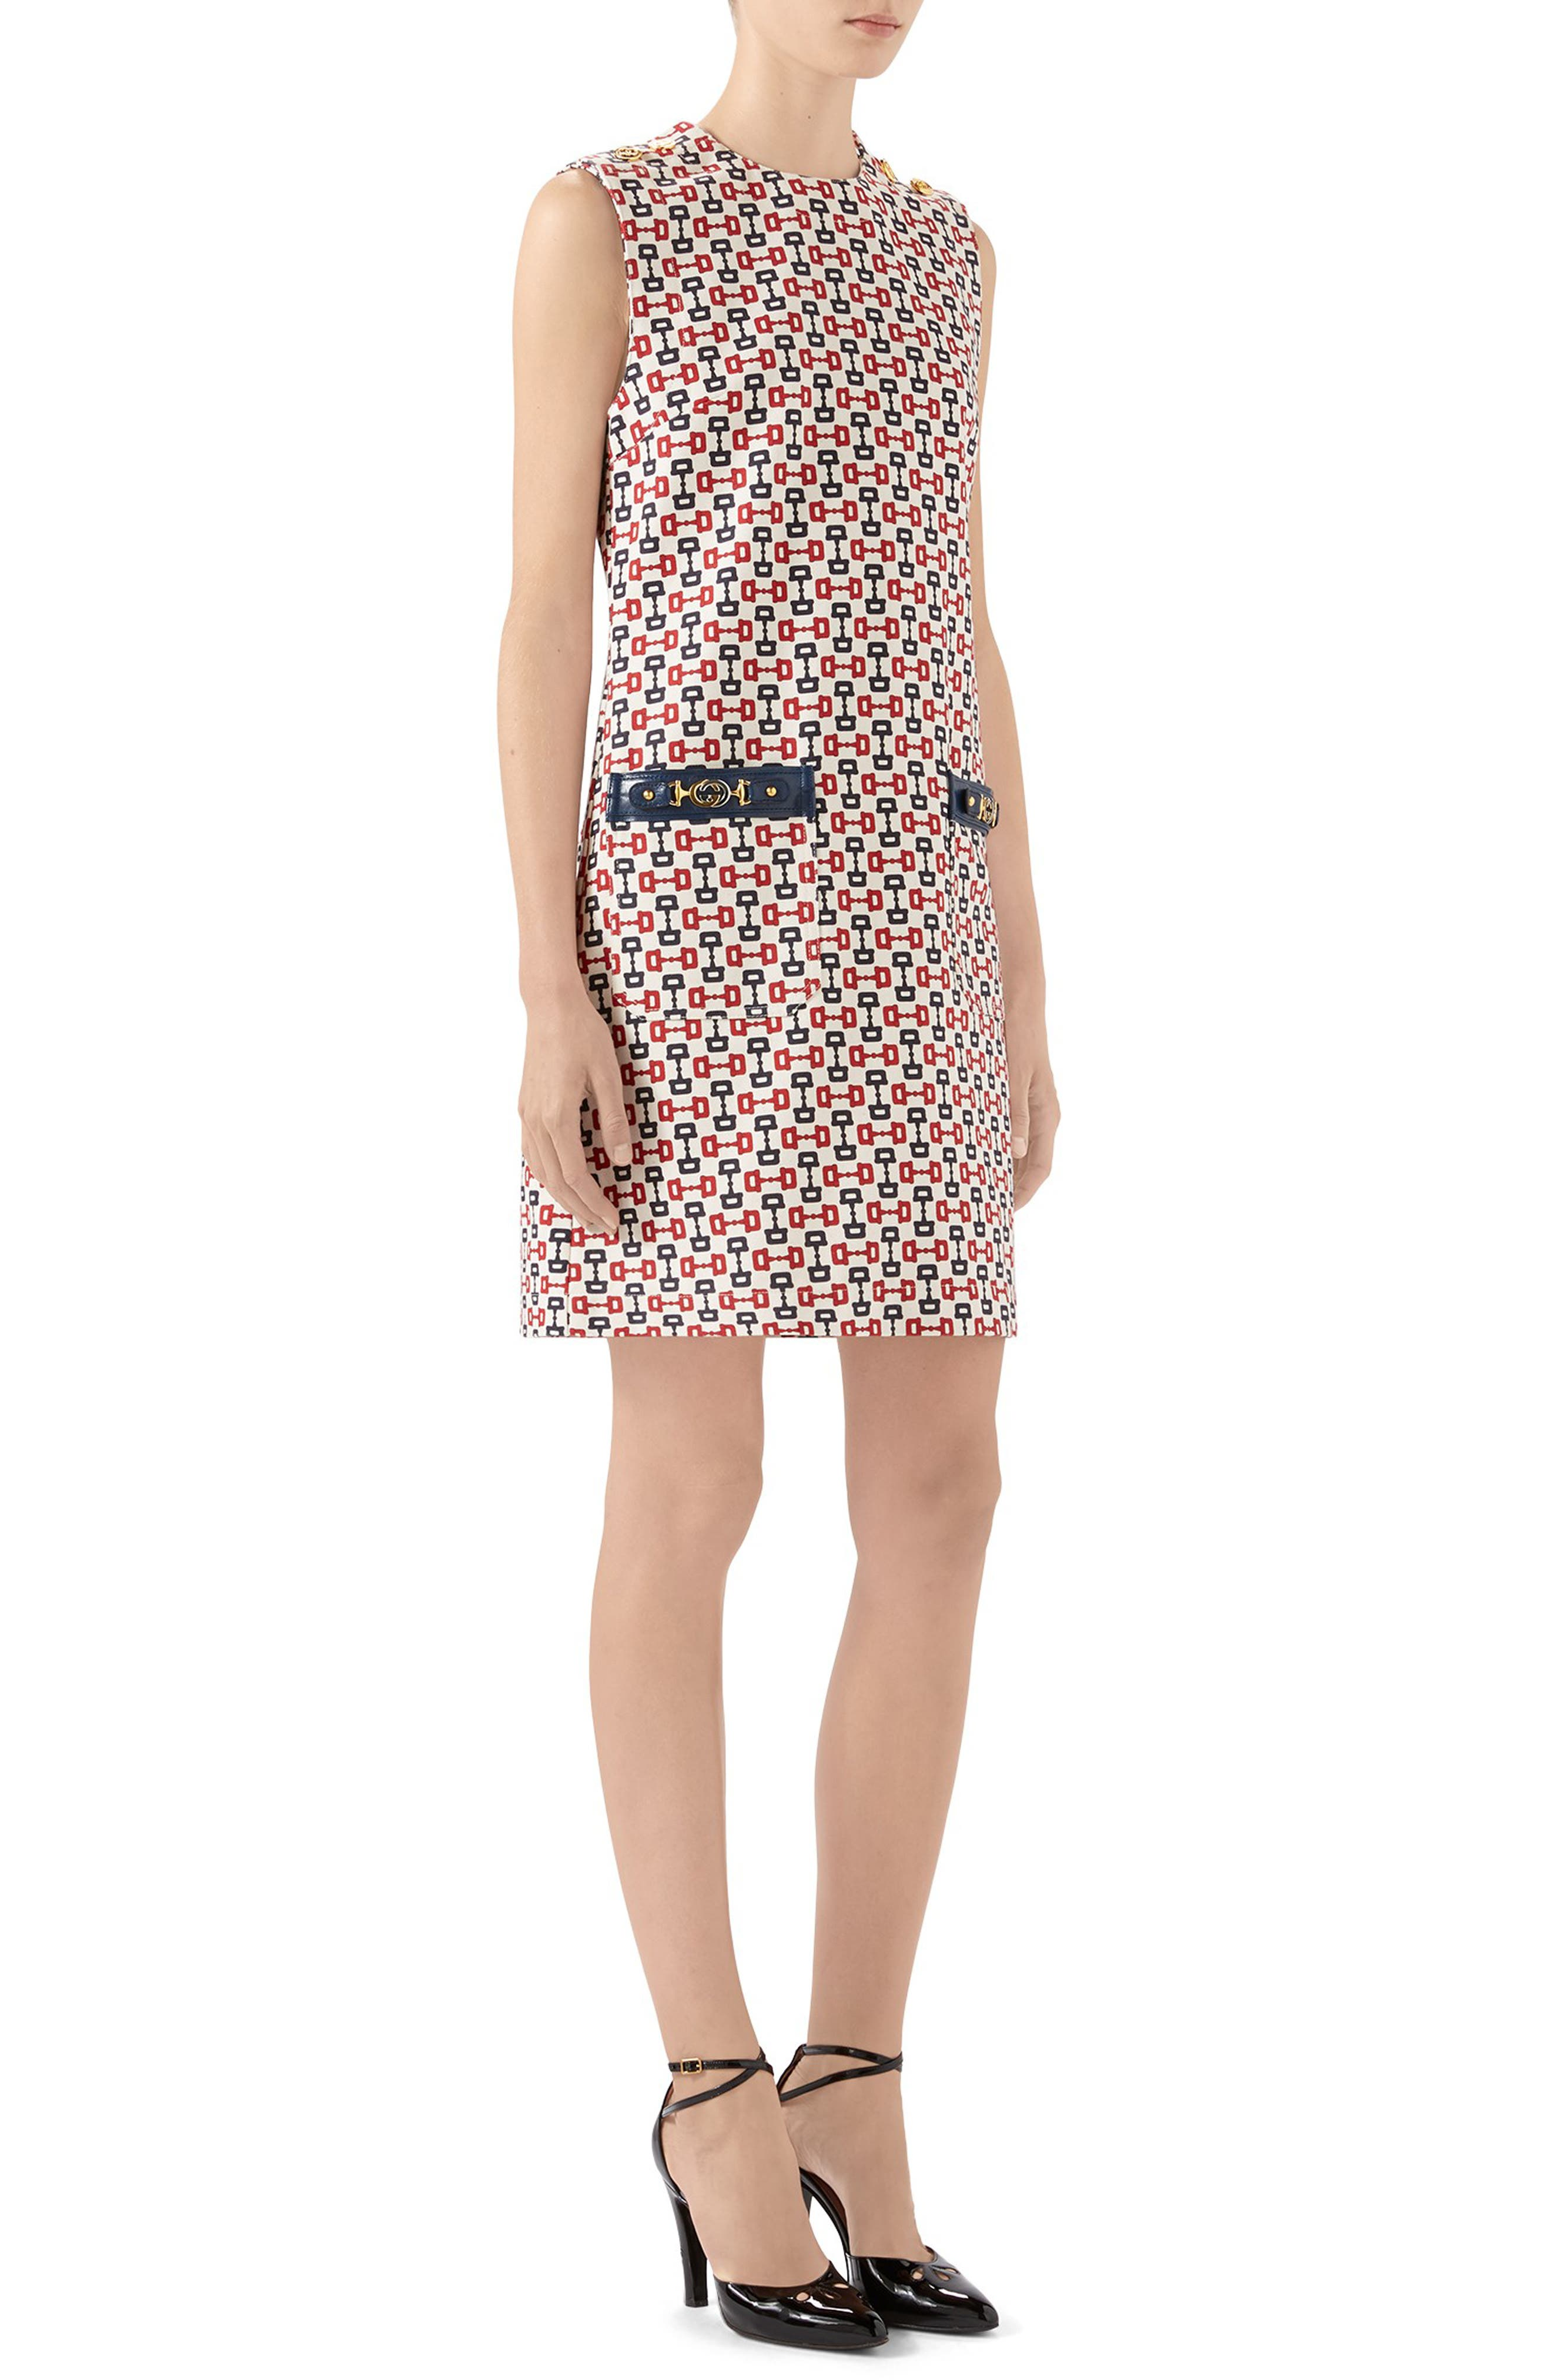 Gucci Dress Horsebit Print Cotton Canvas Shift Dress